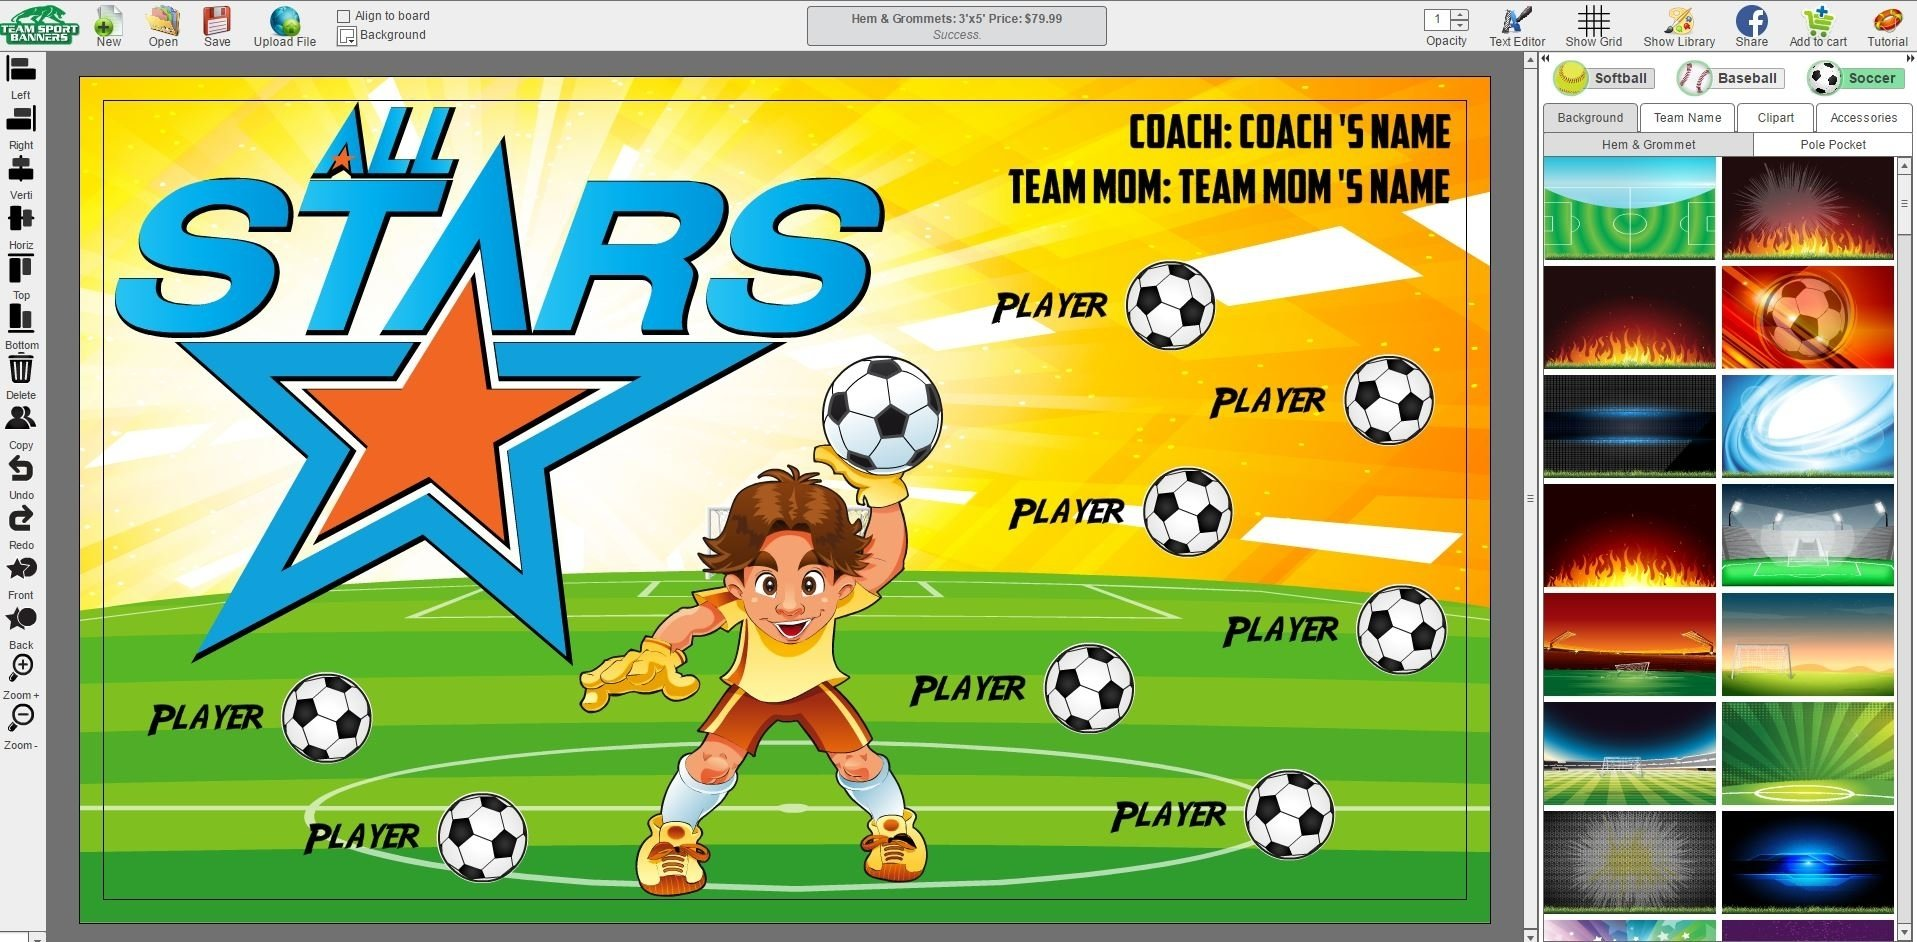 10 Spectacular Youth Soccer Team Names Ideas soccer team banners ayso banners soccer pennants online 69 99 2020